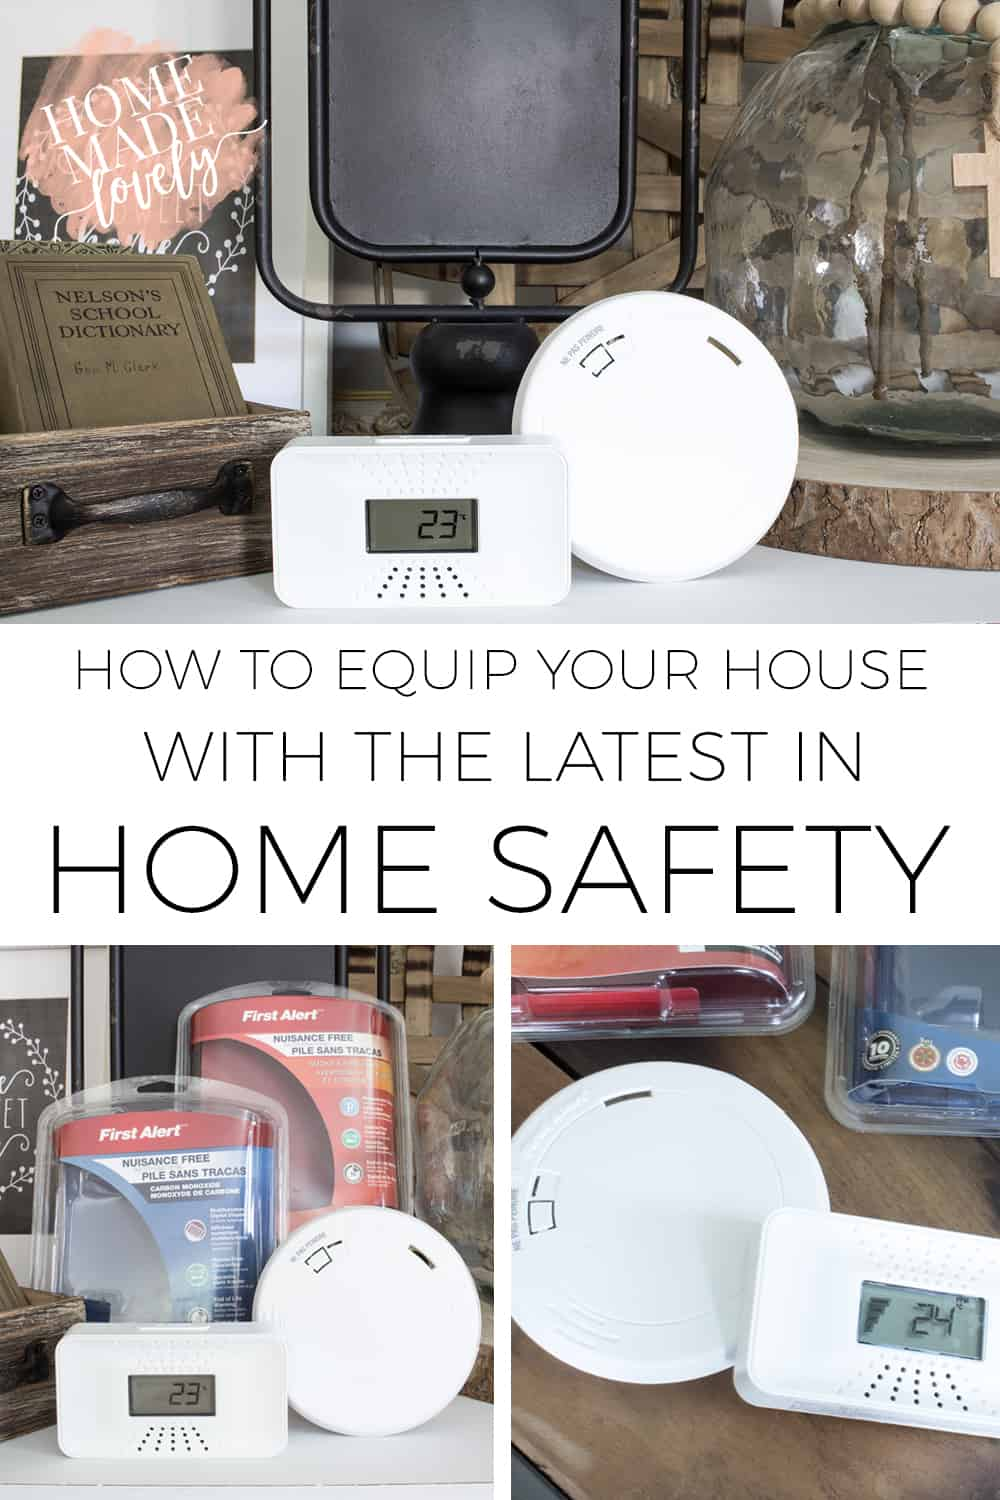 Home safety encompasses all sorts of areas. But two of the most important and often overlooked safety measures are fire and carbon monoxide alarms.Here's how to equip your house with the latest in home safety.